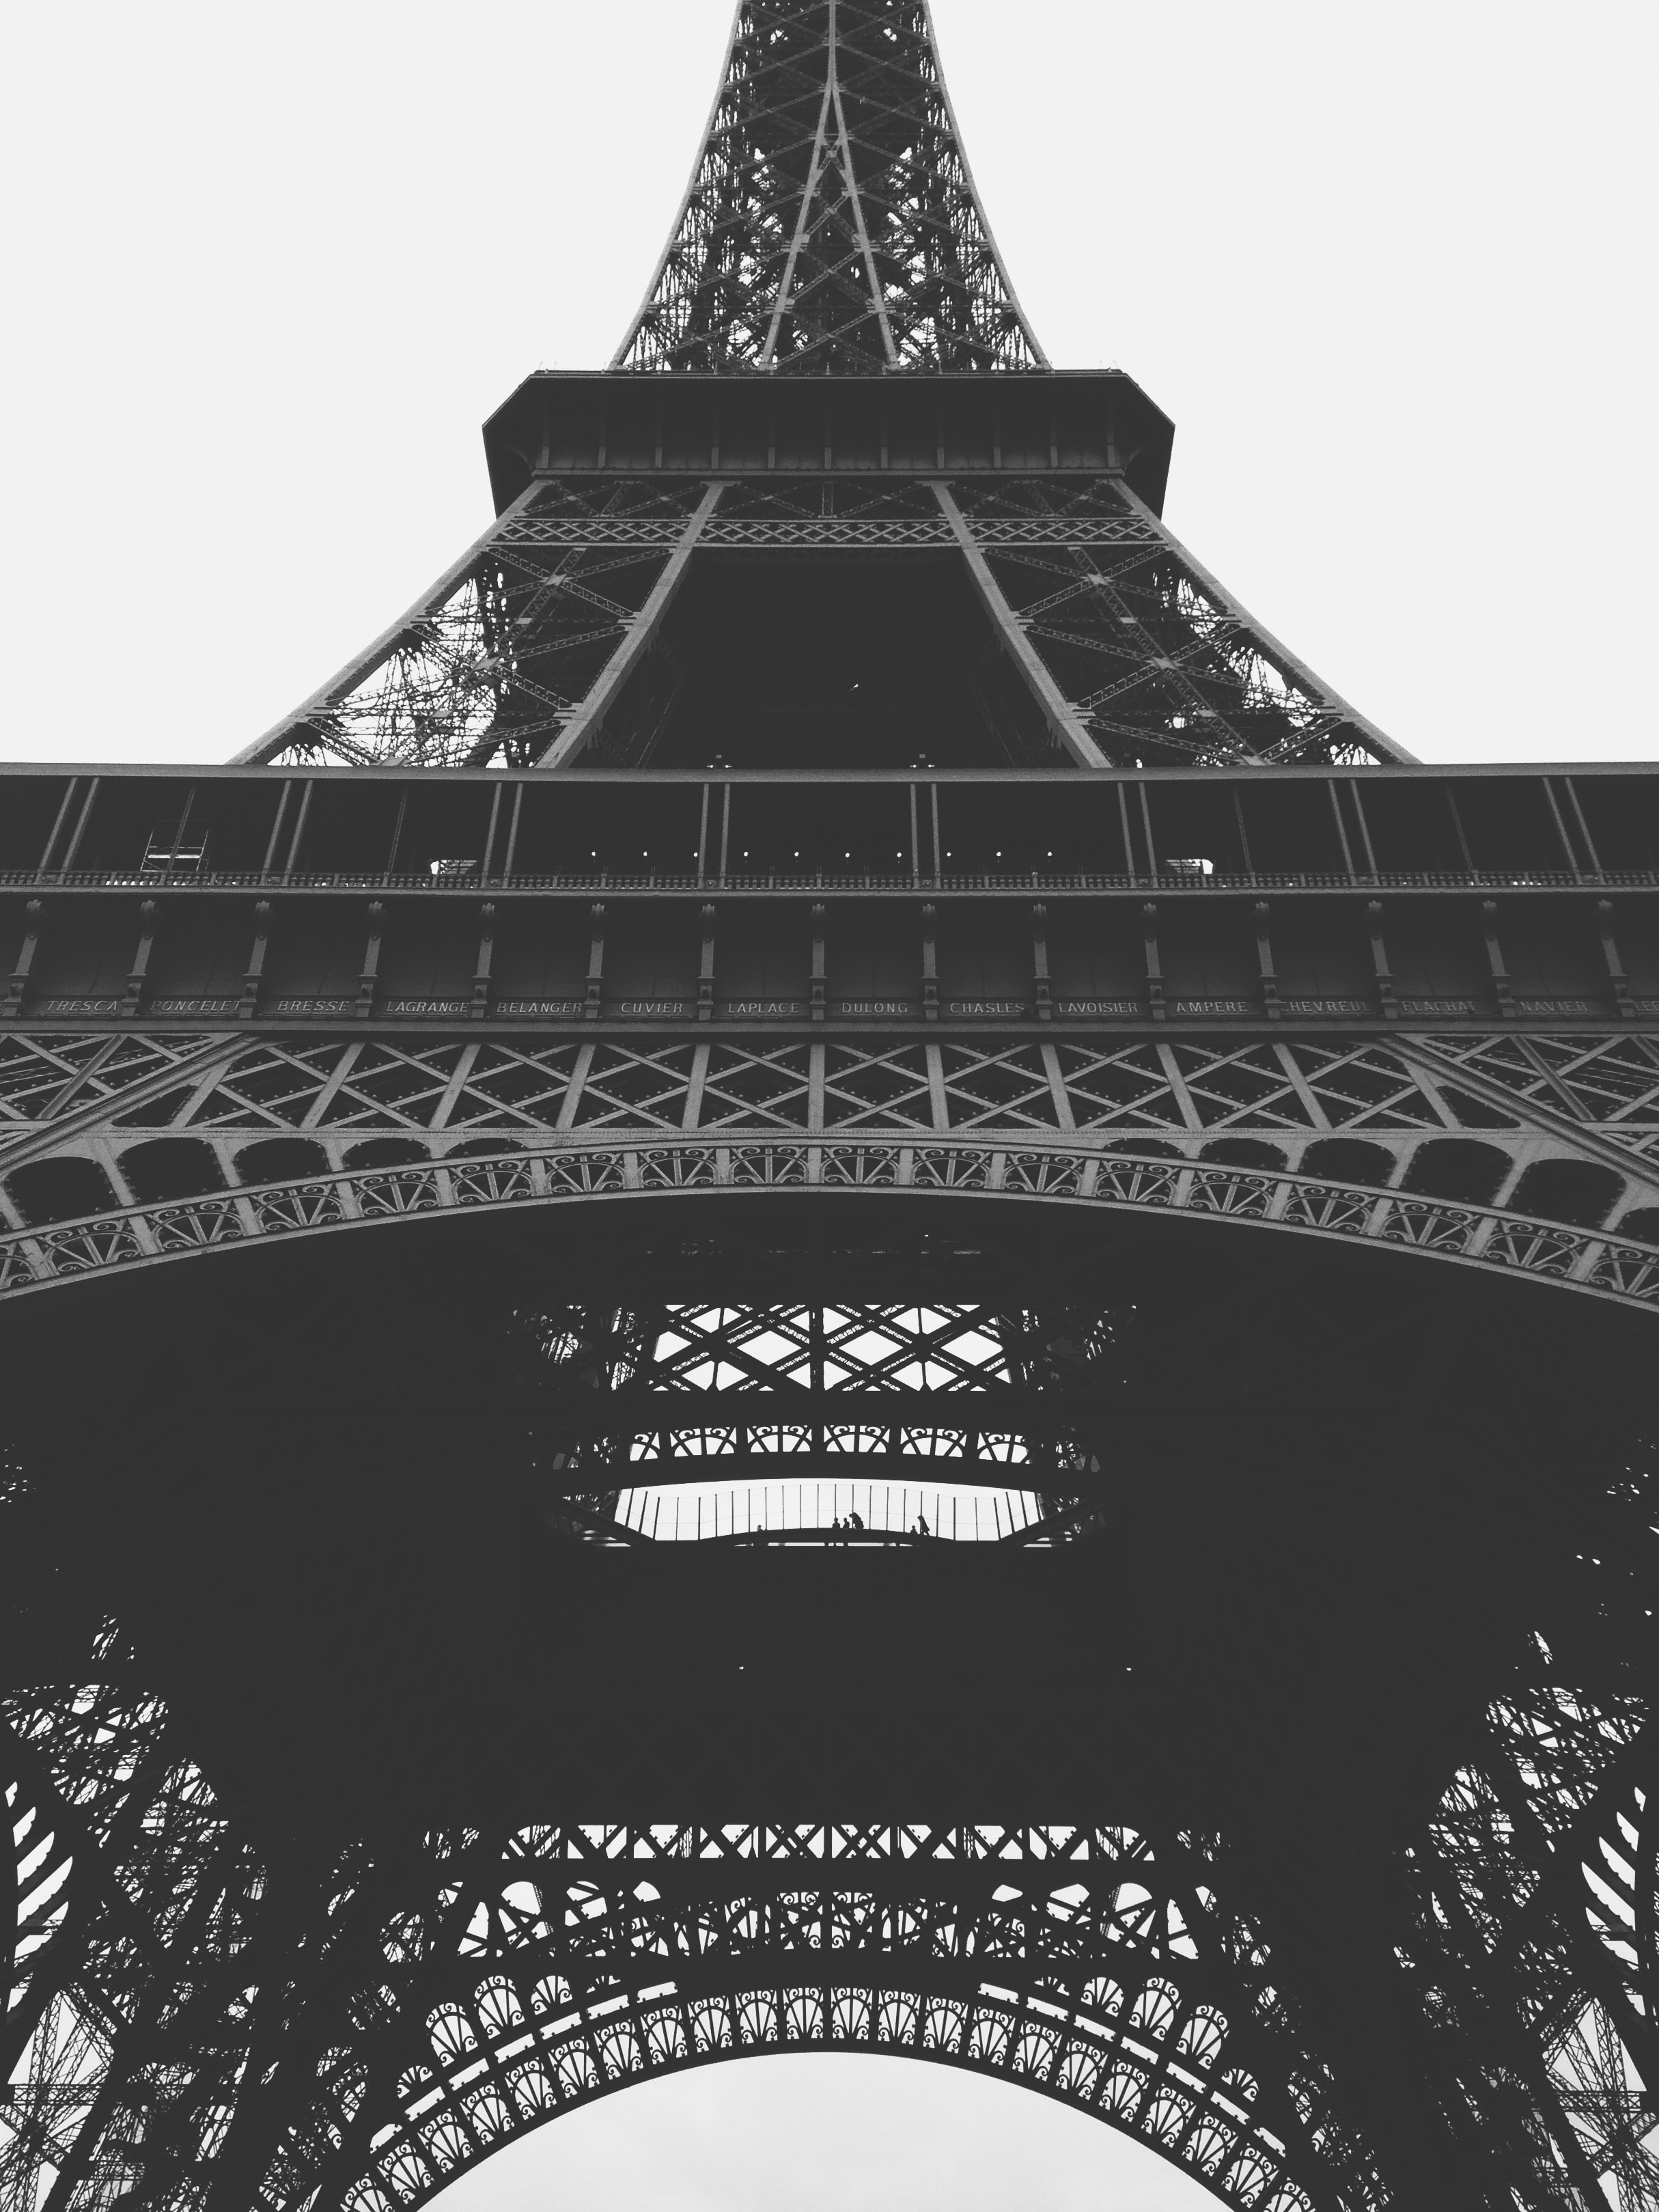 A black-and-white shot of the bottom of the Eiffel Tower